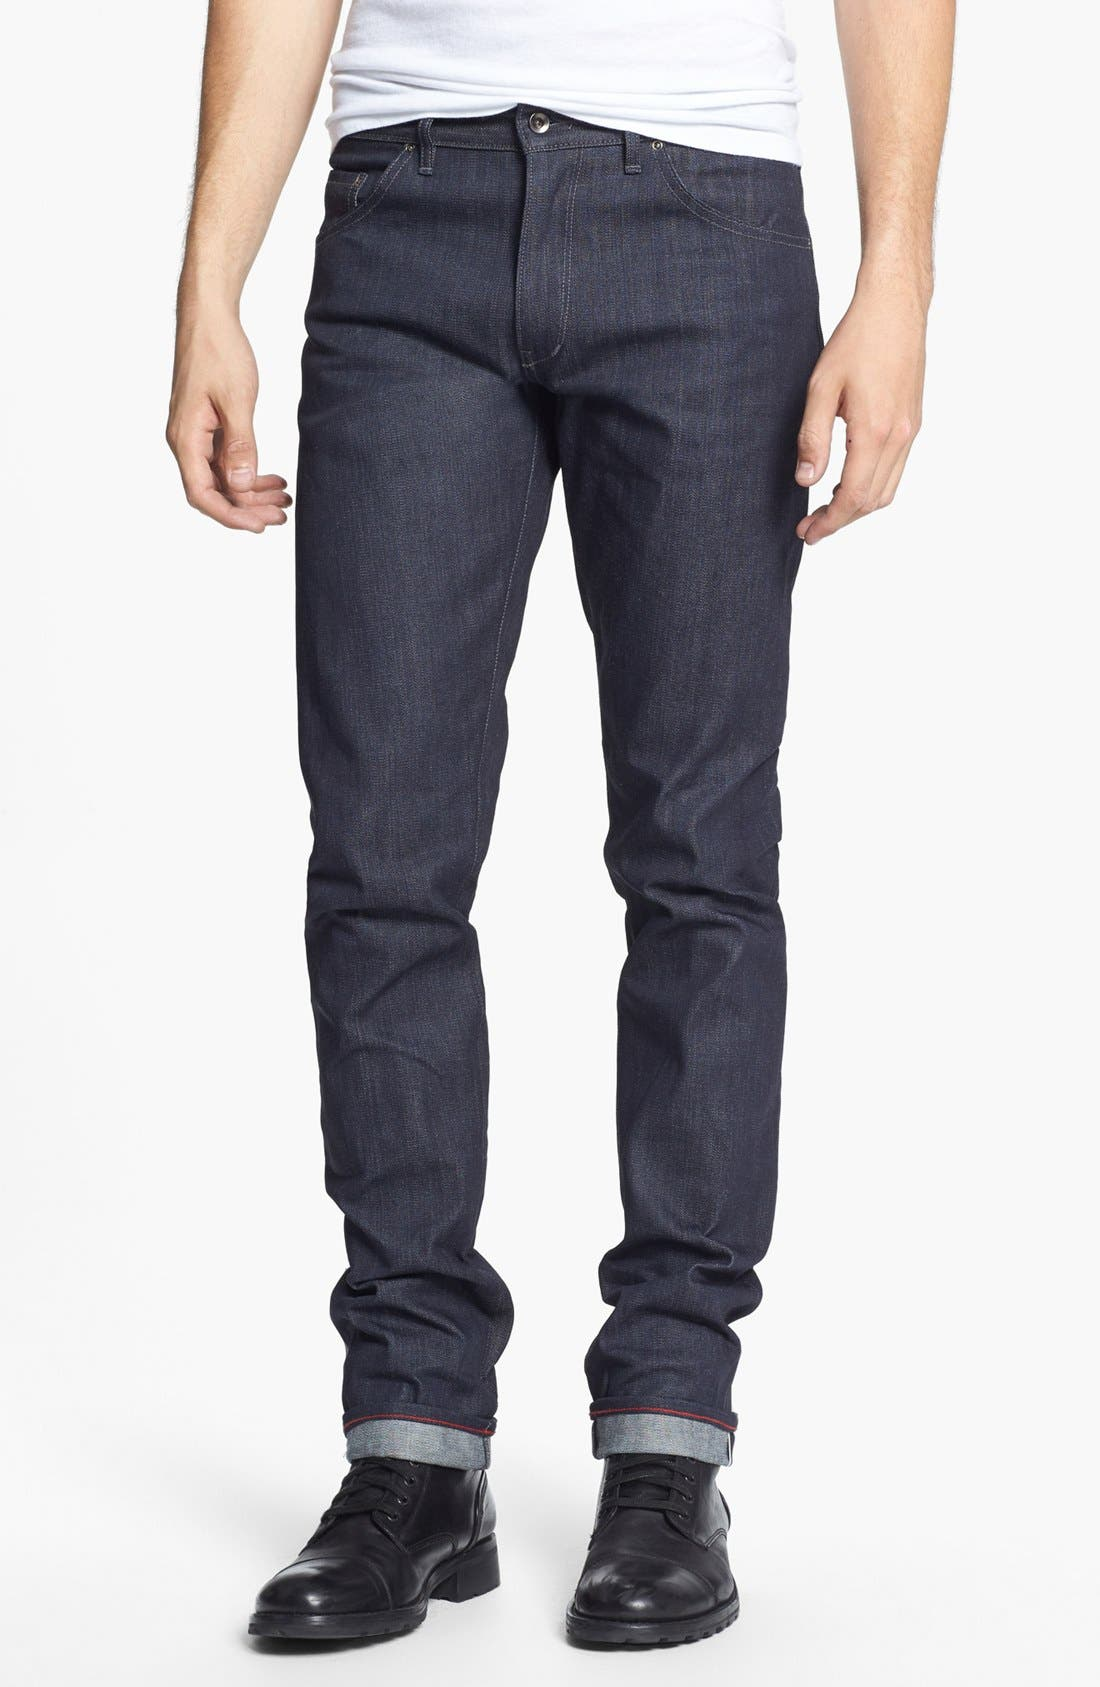 Alternate Image 1 Selected - Raleigh Denim 'Martin' Skinny Fit Selvedge Jeans (Raw)